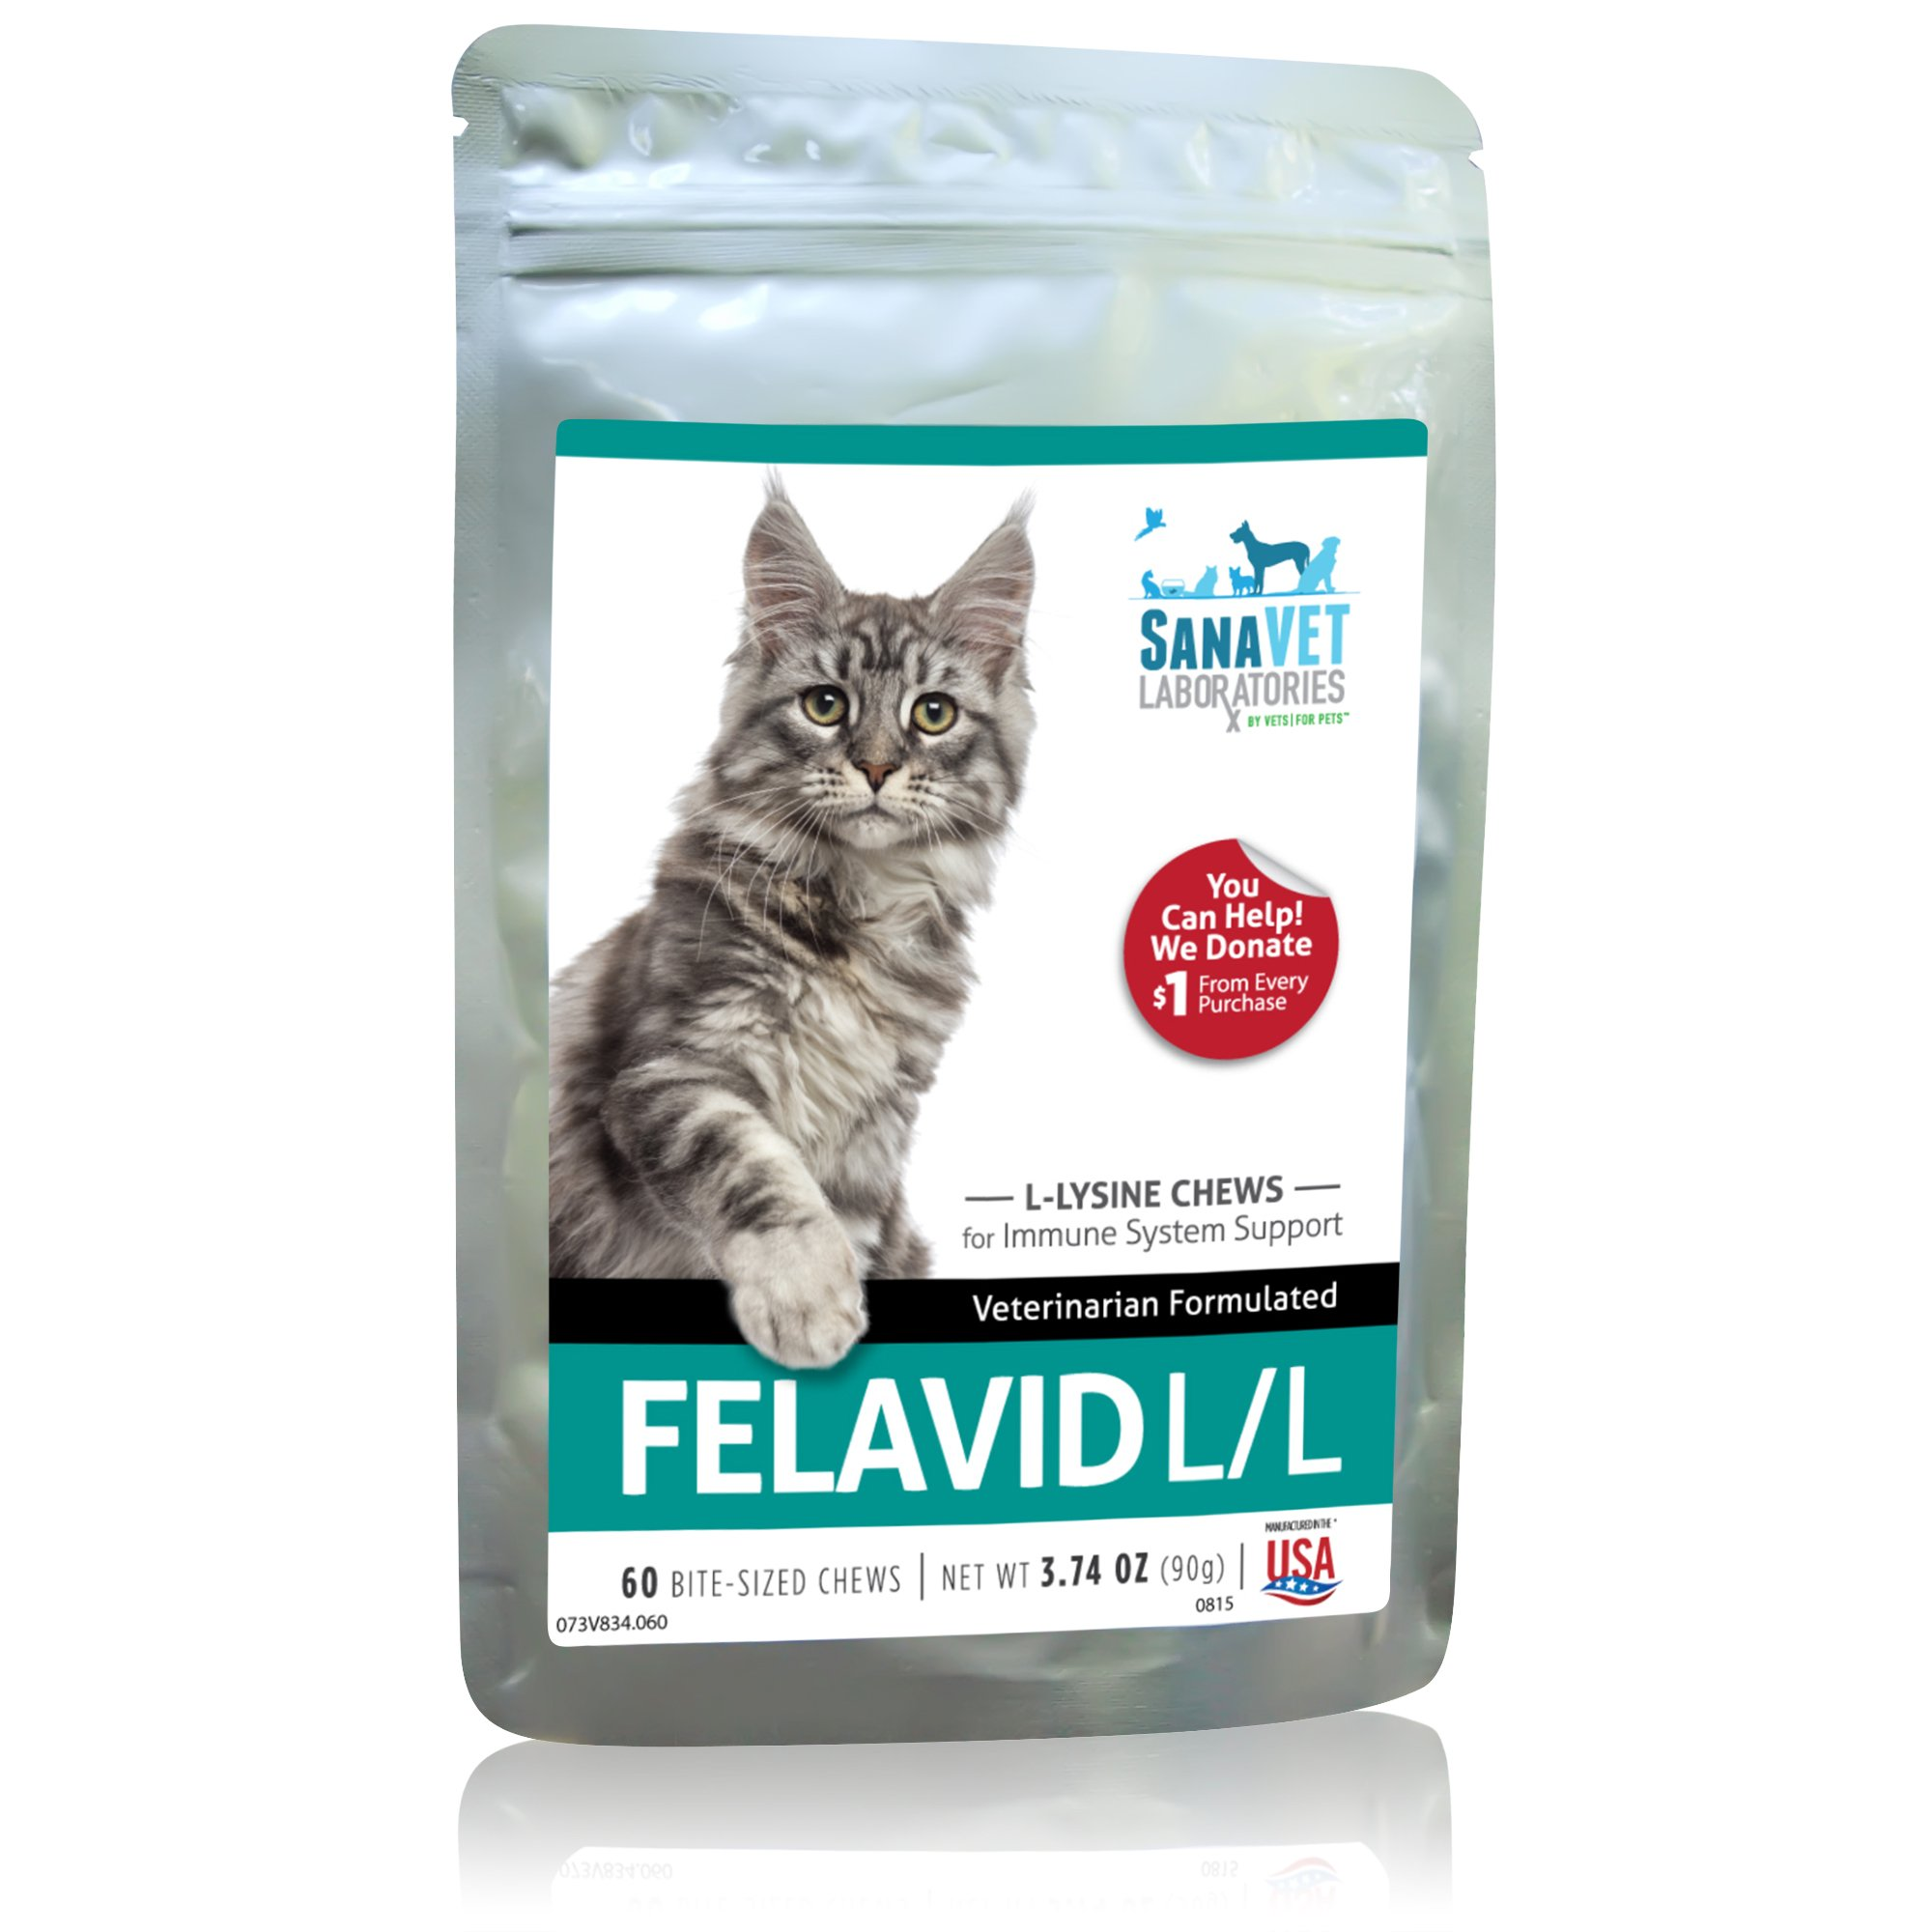 L Lysine for Cats - Tasty Chews for Immune System Support 3.74oz by Sanavet Laboratories